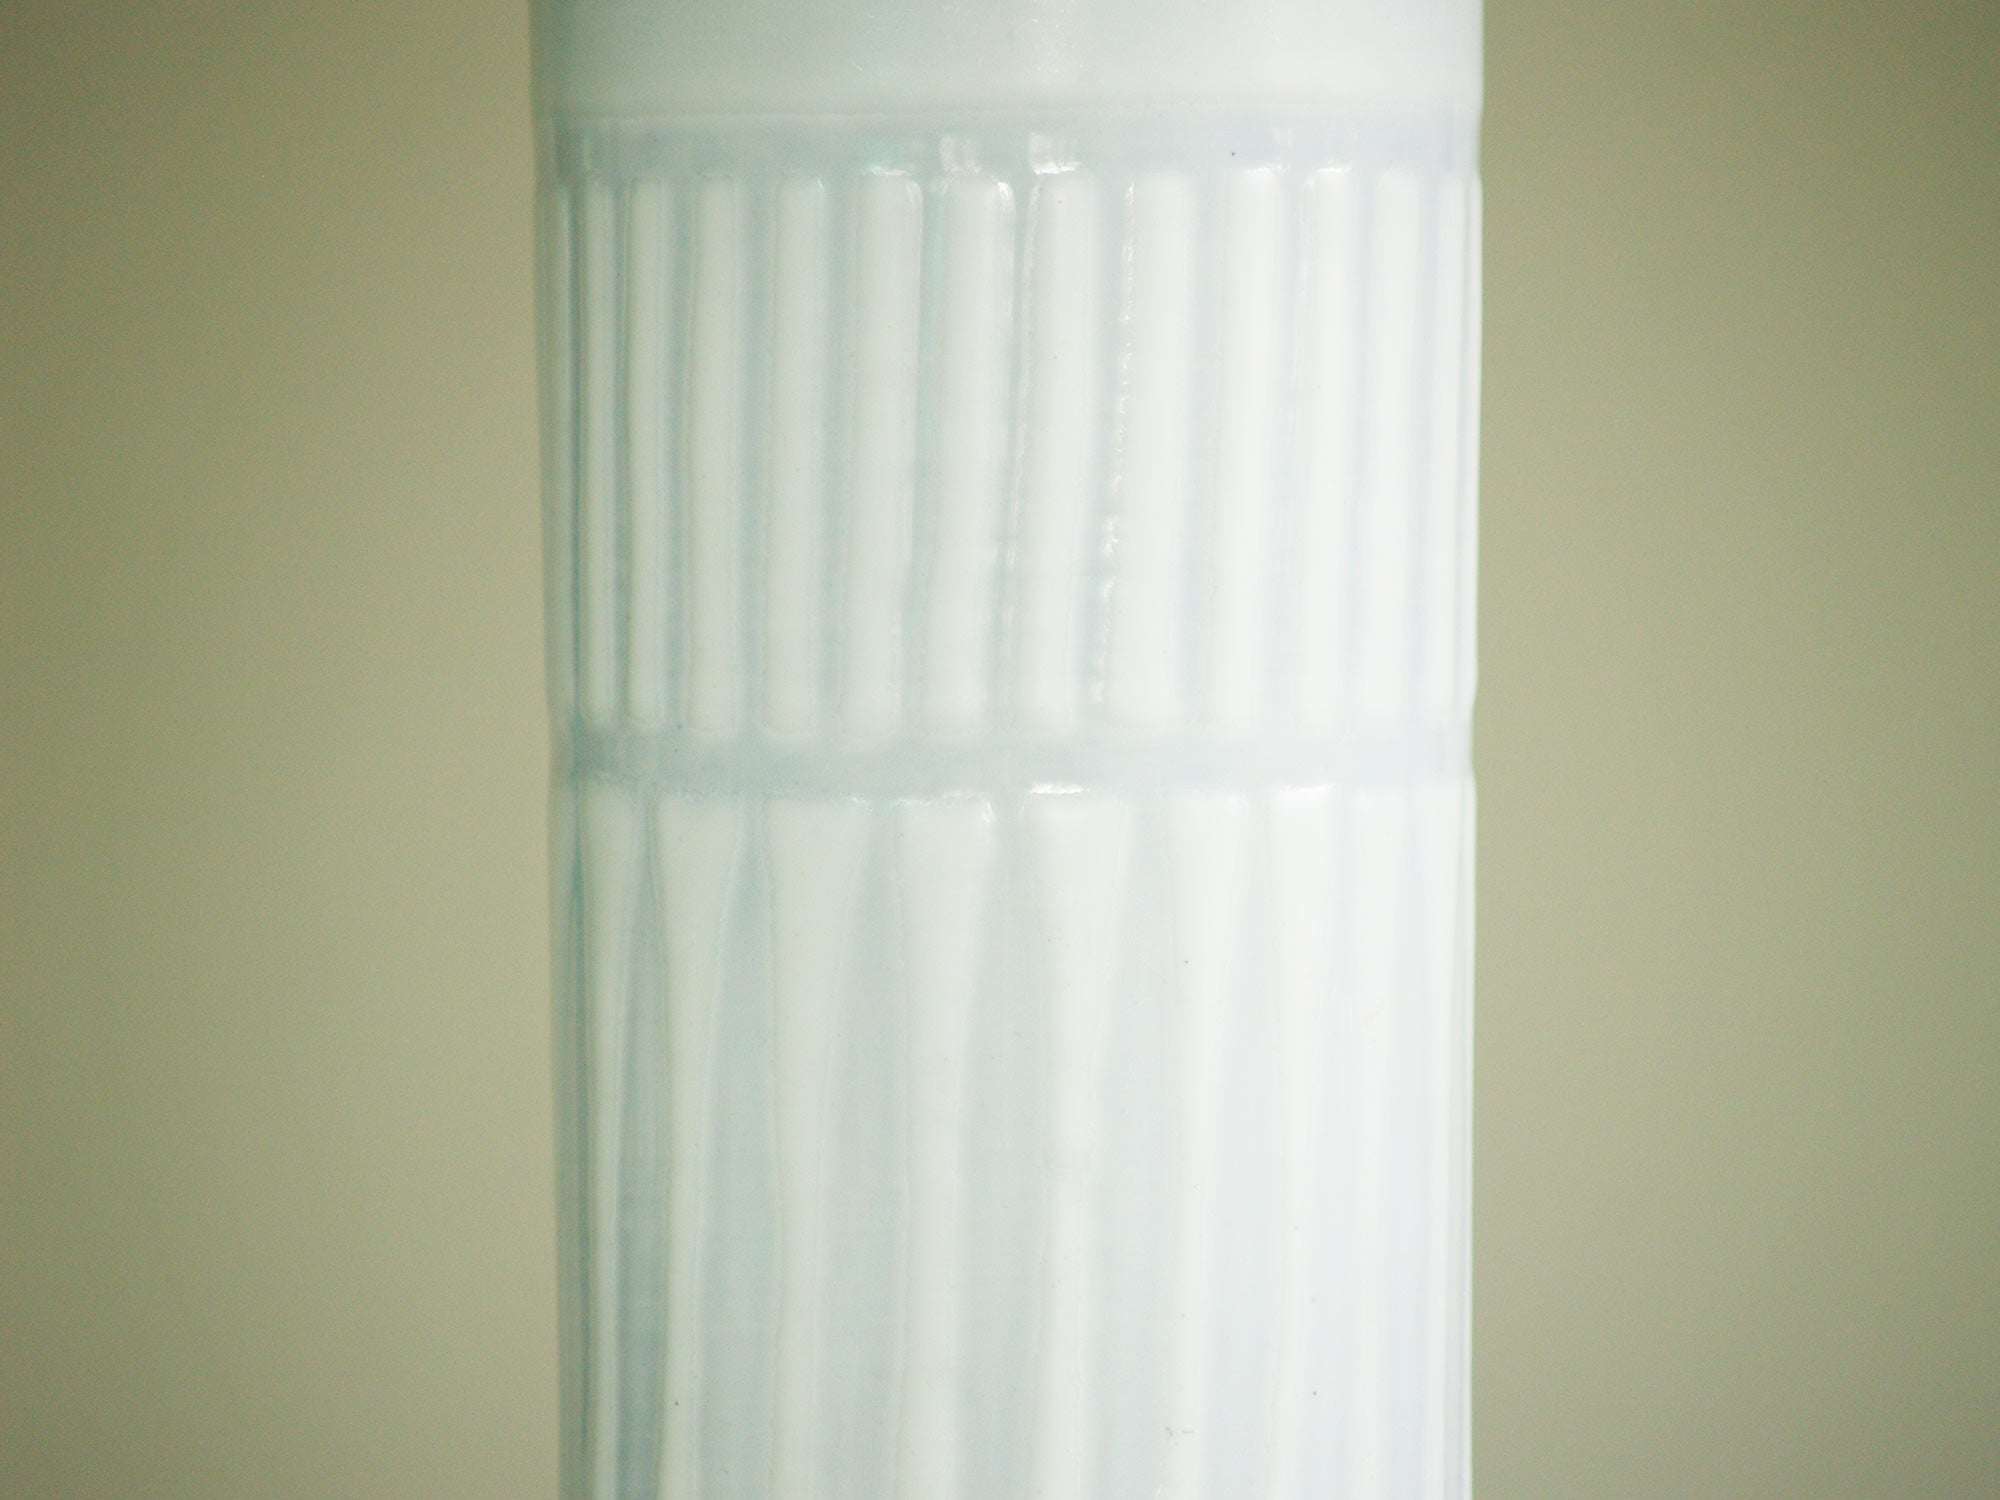 Vase rouleau de Roger Capron, France (vers 1955)..Cylindric vase by Roger Capron, France (circa 1955)